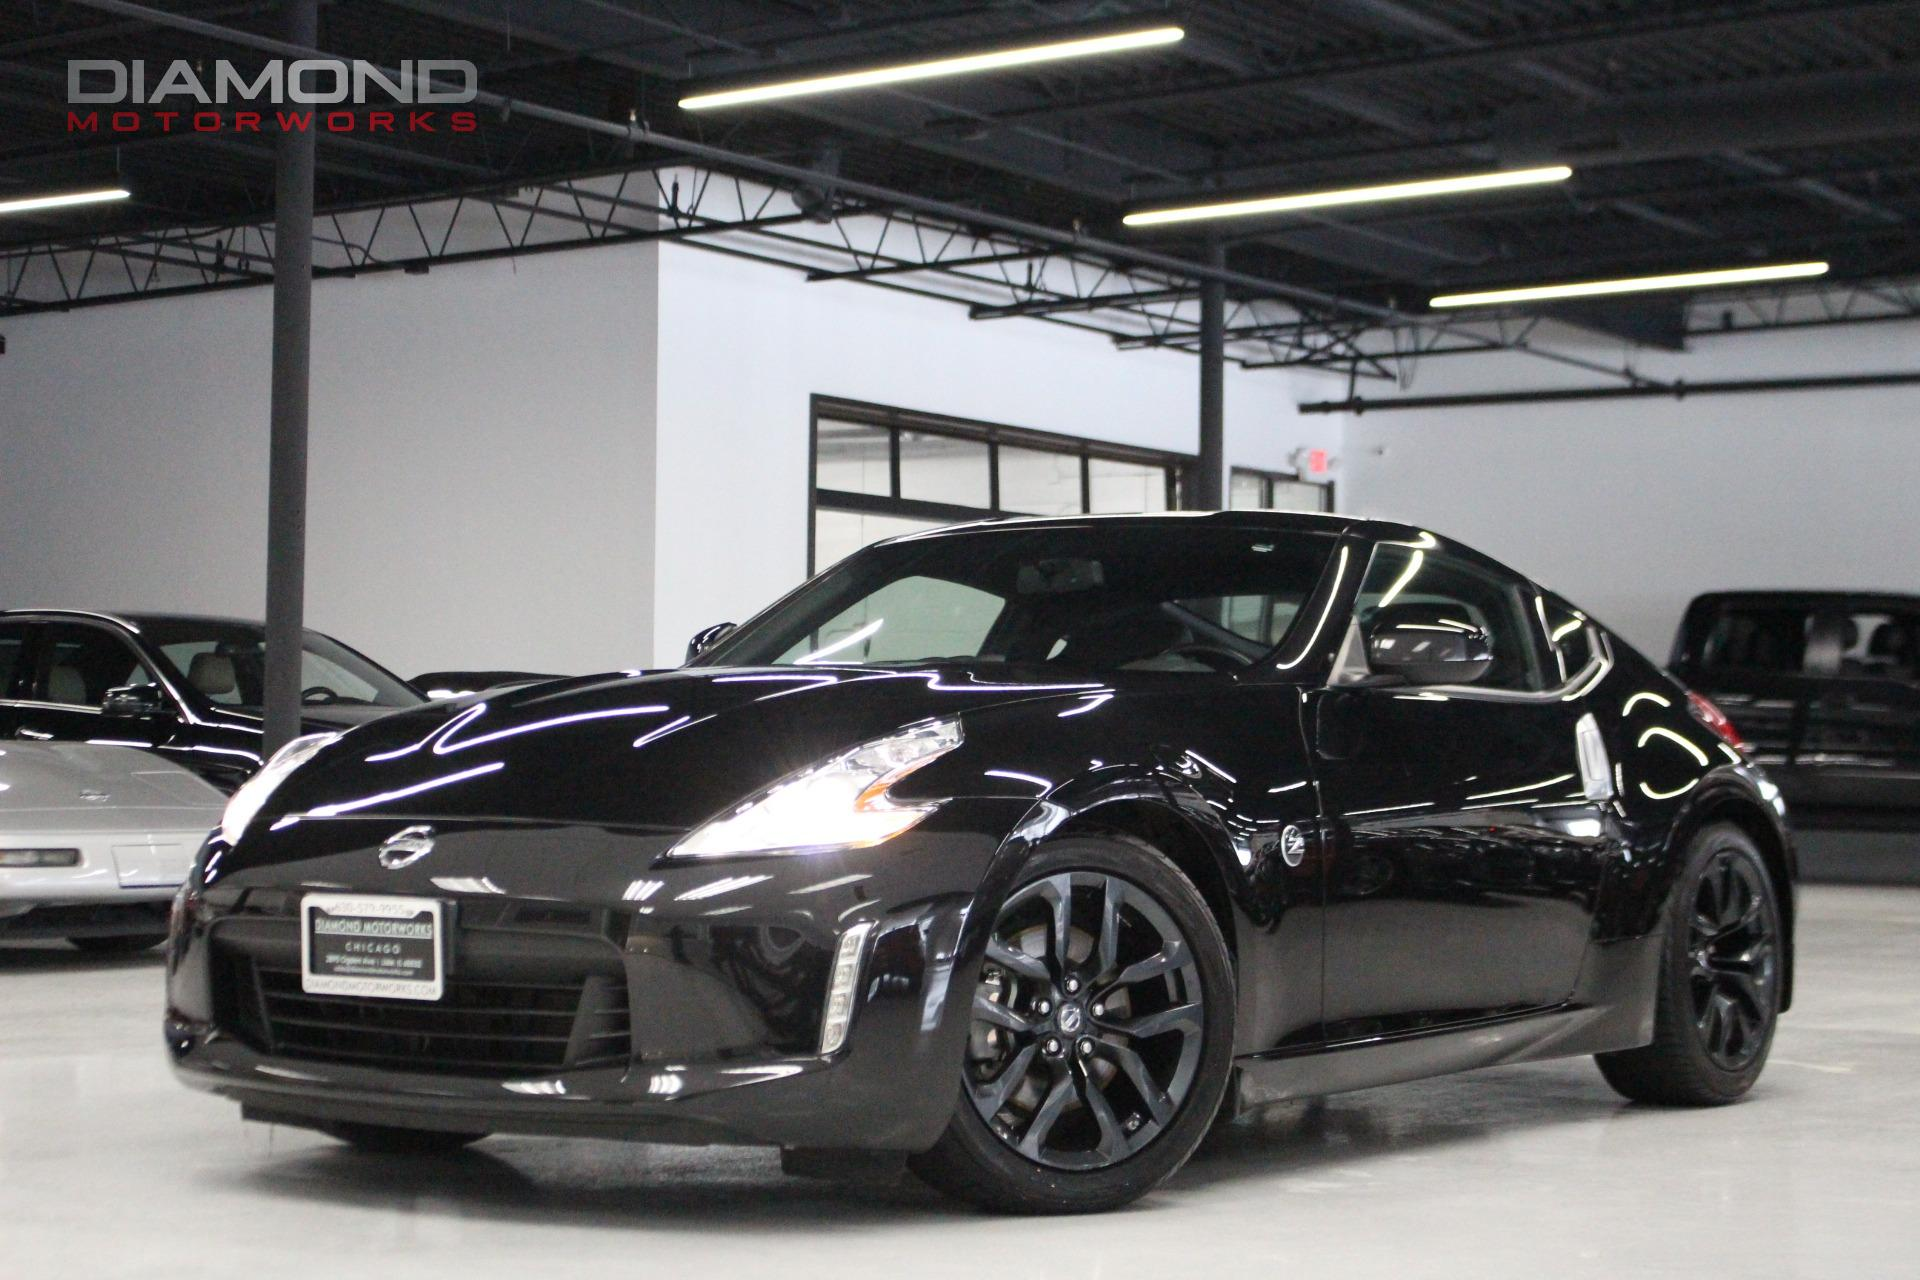 Certified Pre Owned Nissan >> 2015 Nissan 370Z Touring Stock # 443698 for sale near Lisle, IL | IL Nissan Dealer